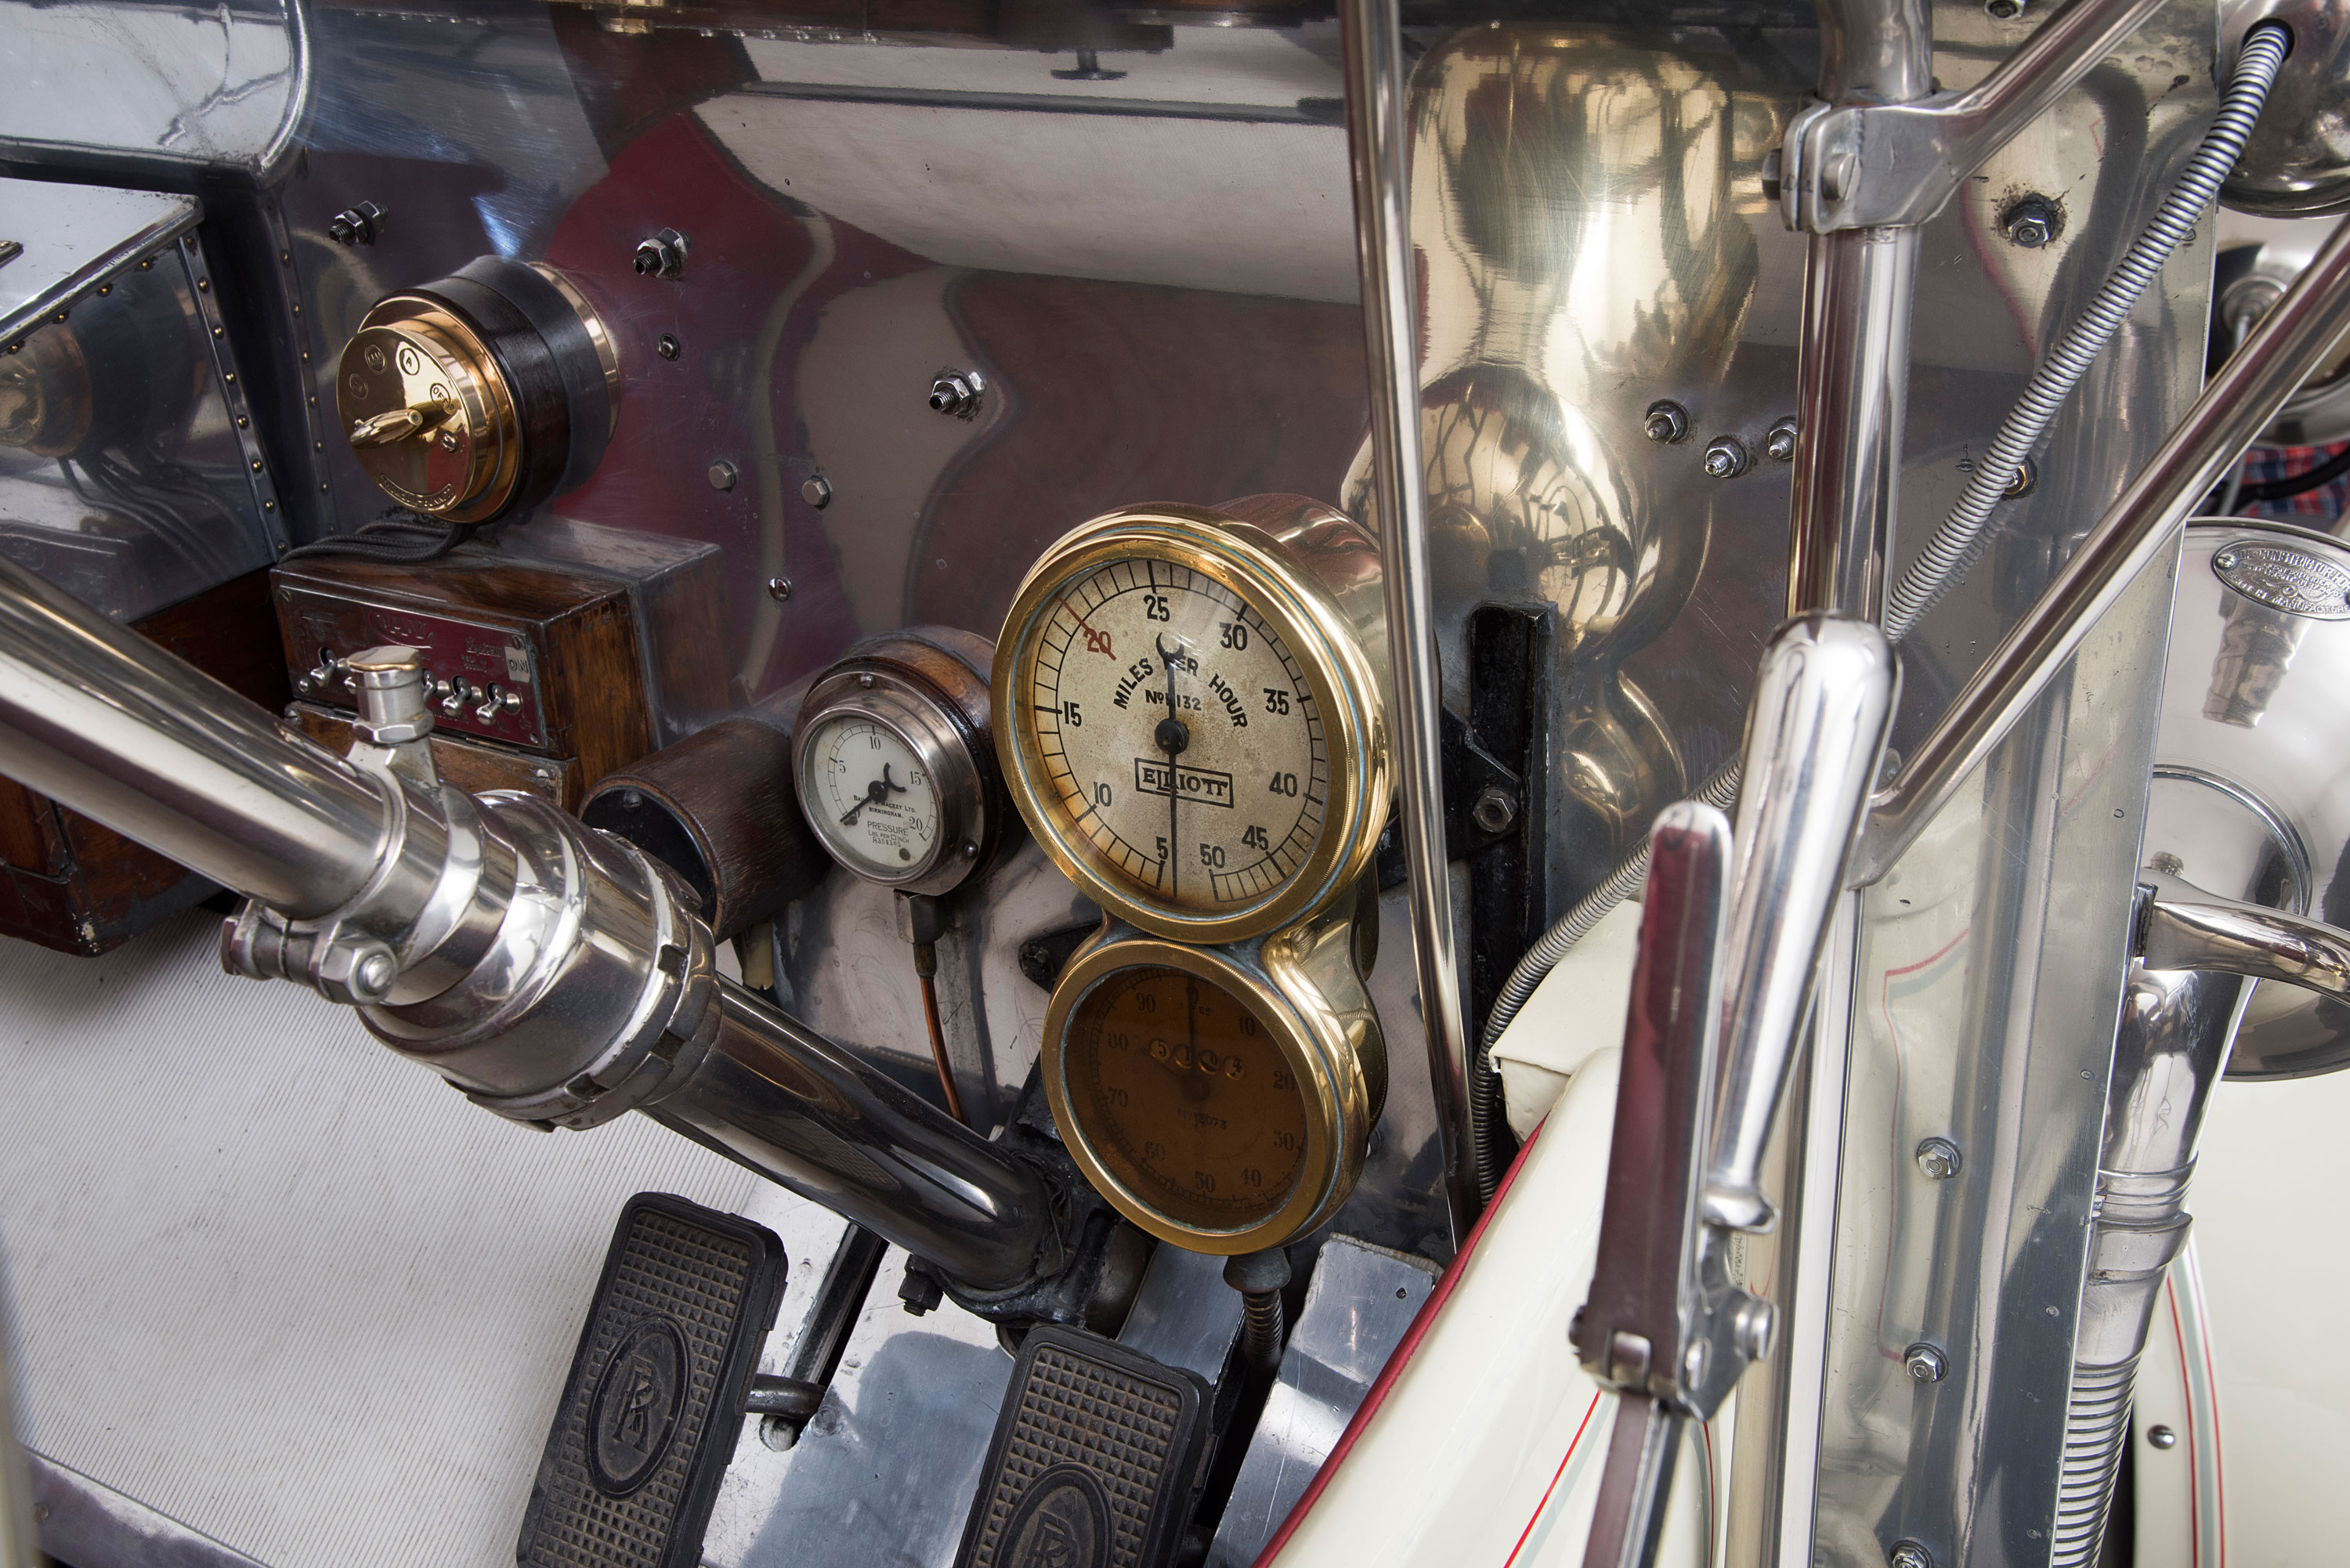 A close-up of a 1909 Rolls Royce showing the speedometer, pressure gauge and other parts